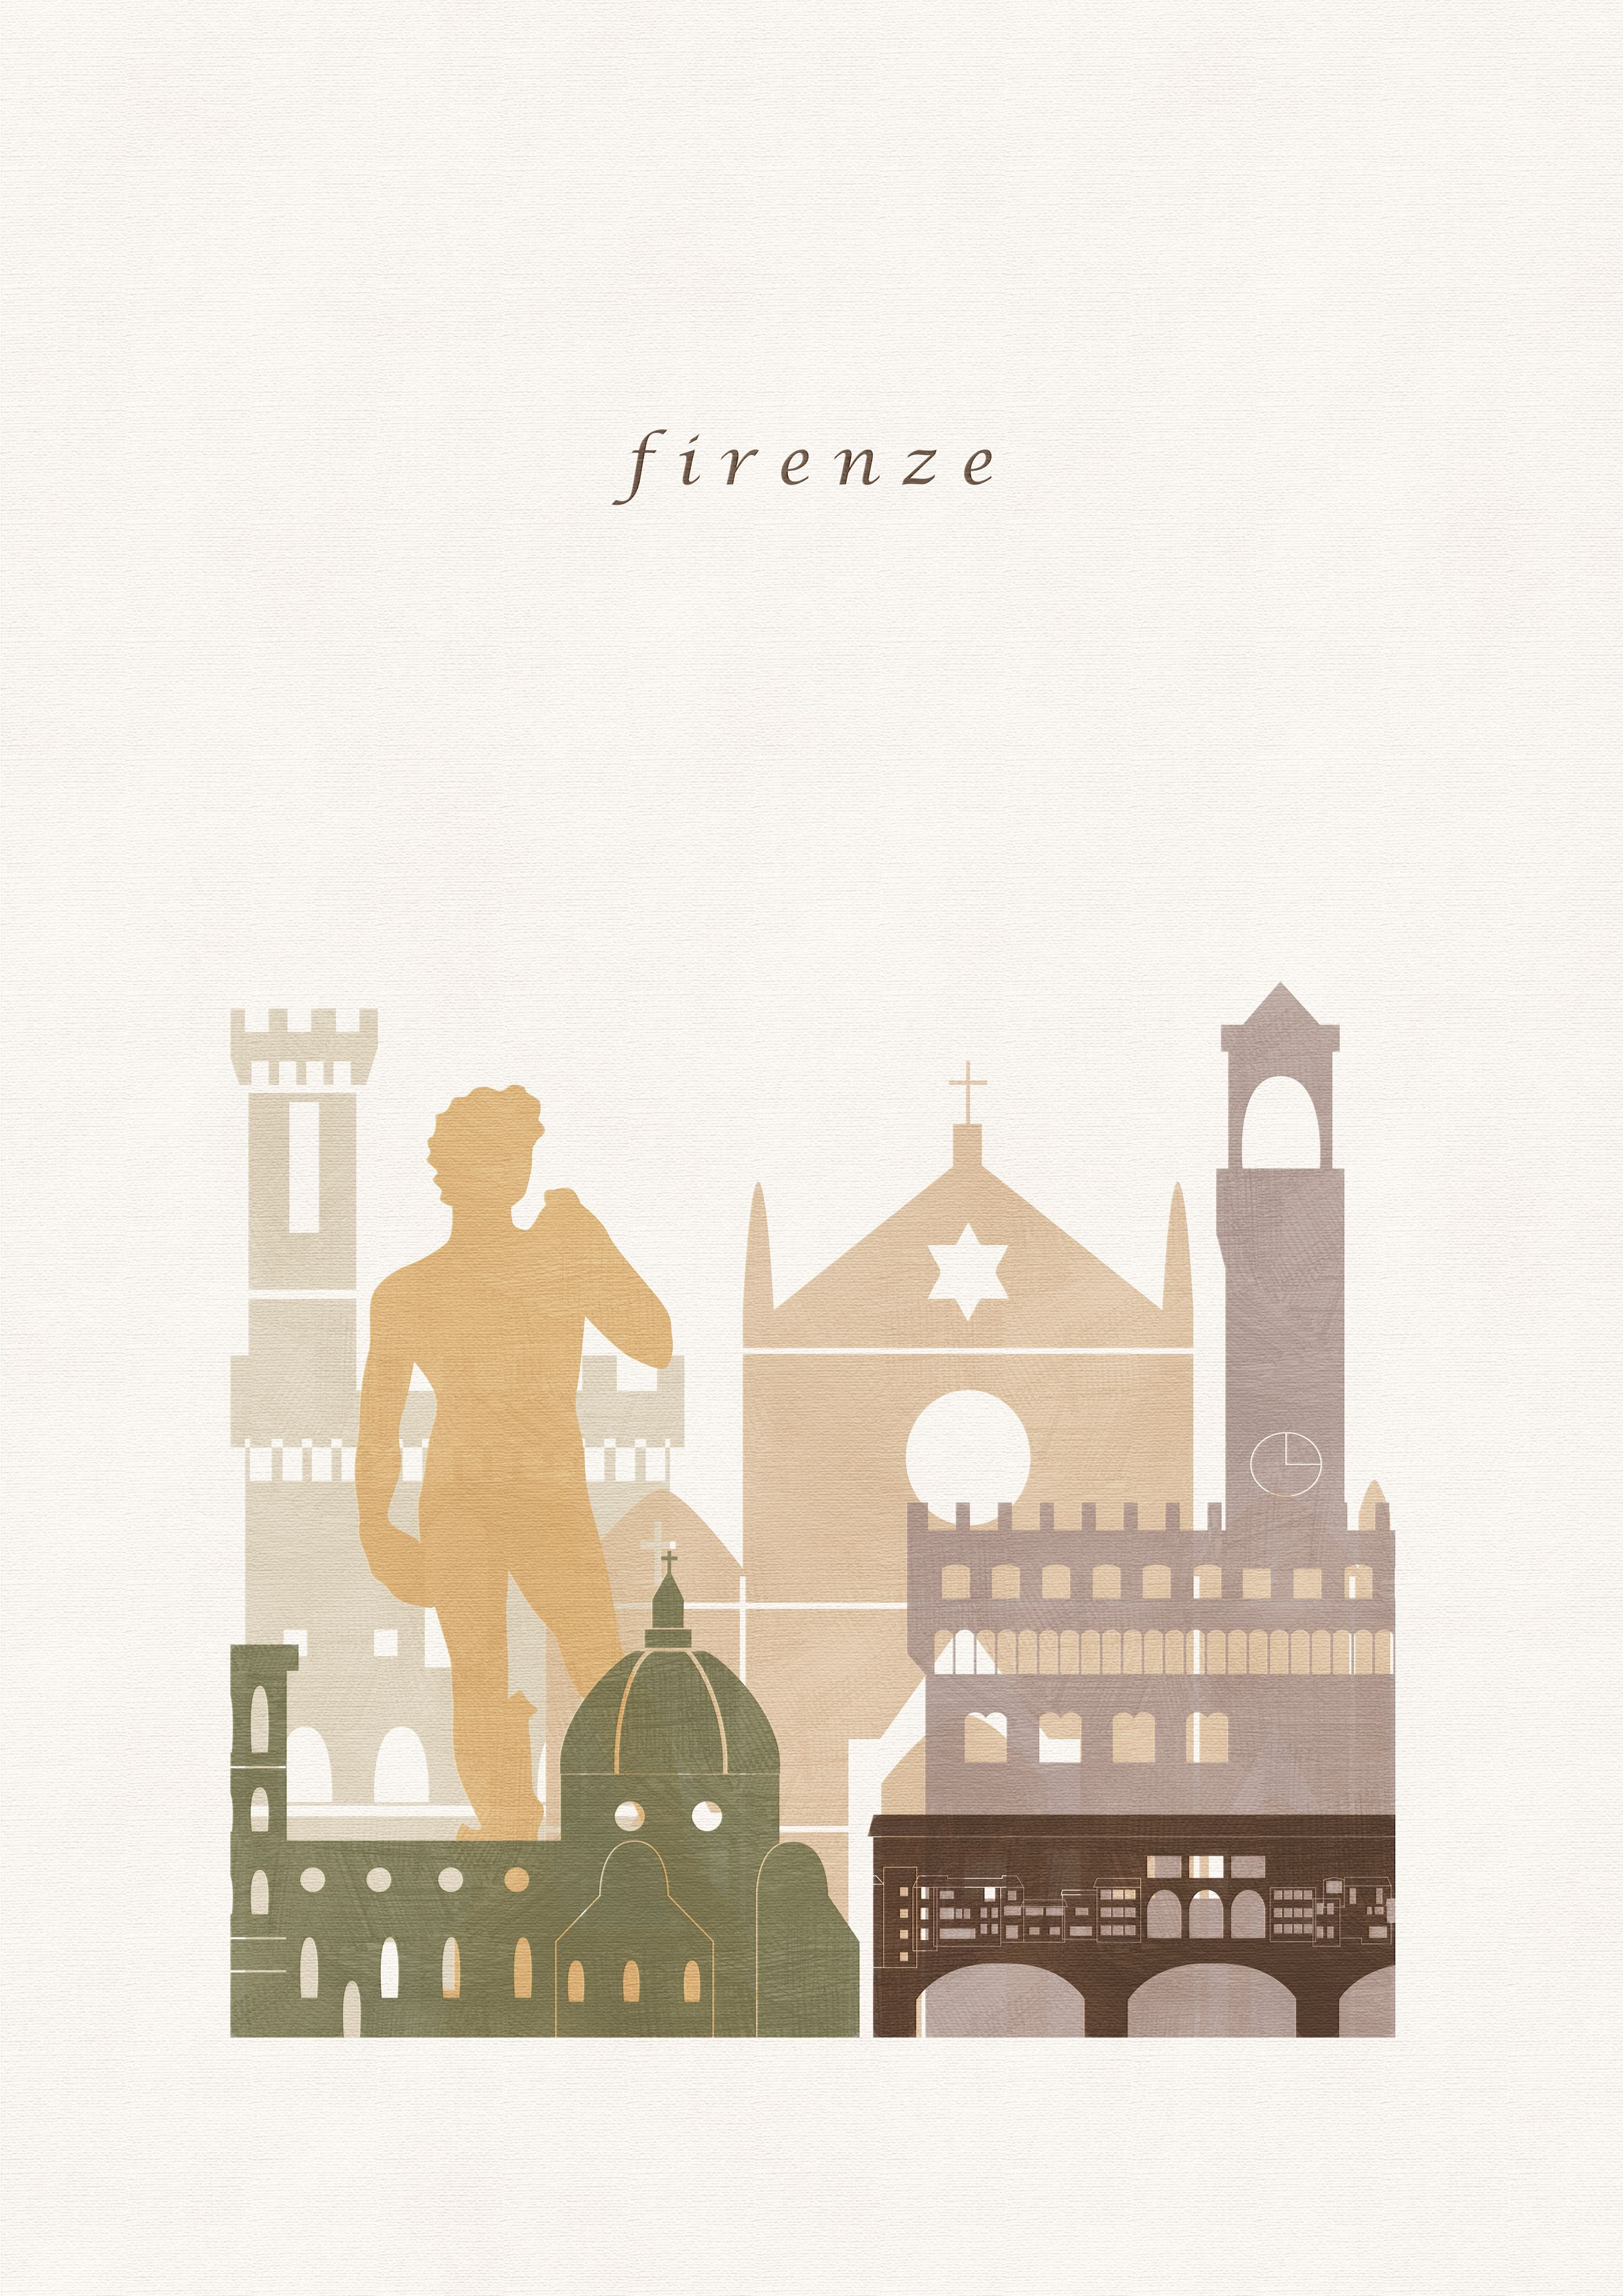 Florence Print Florence Poster Florence Wall Art Florence Skyline City Prints Italy Printable Art Art In Italy Illustration City Prints City Illustration